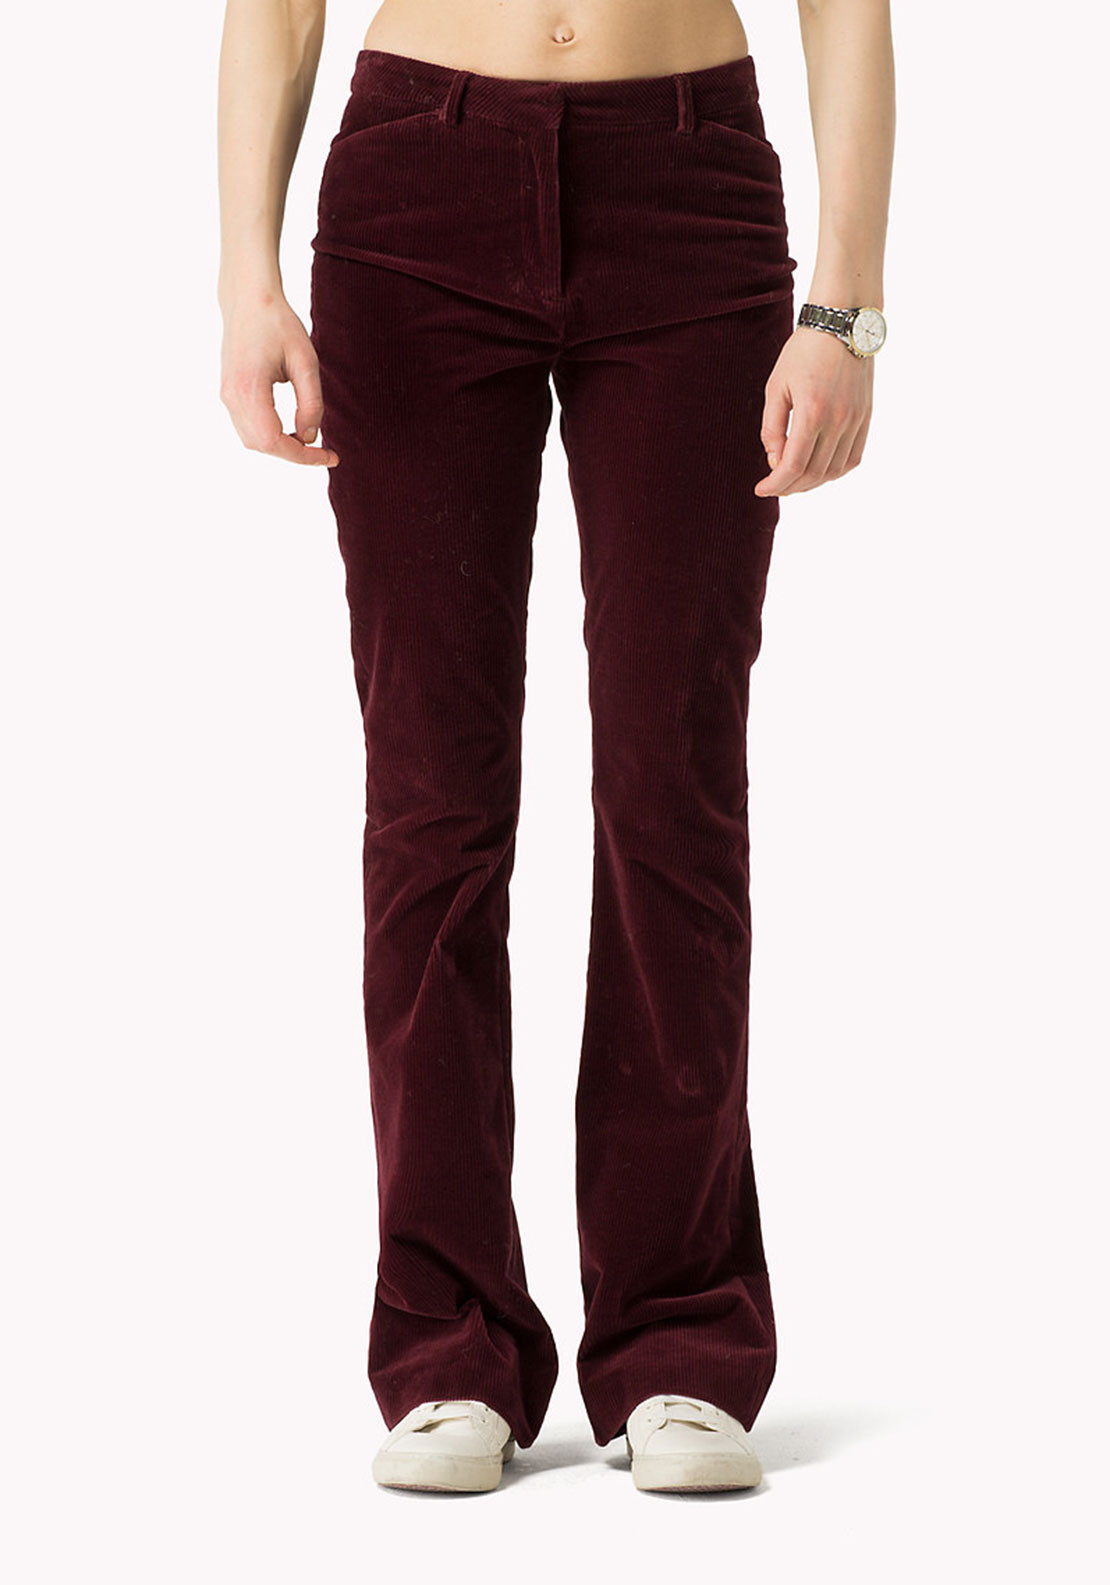 Tommy Hilfiger Womens Flared Cords, Wine